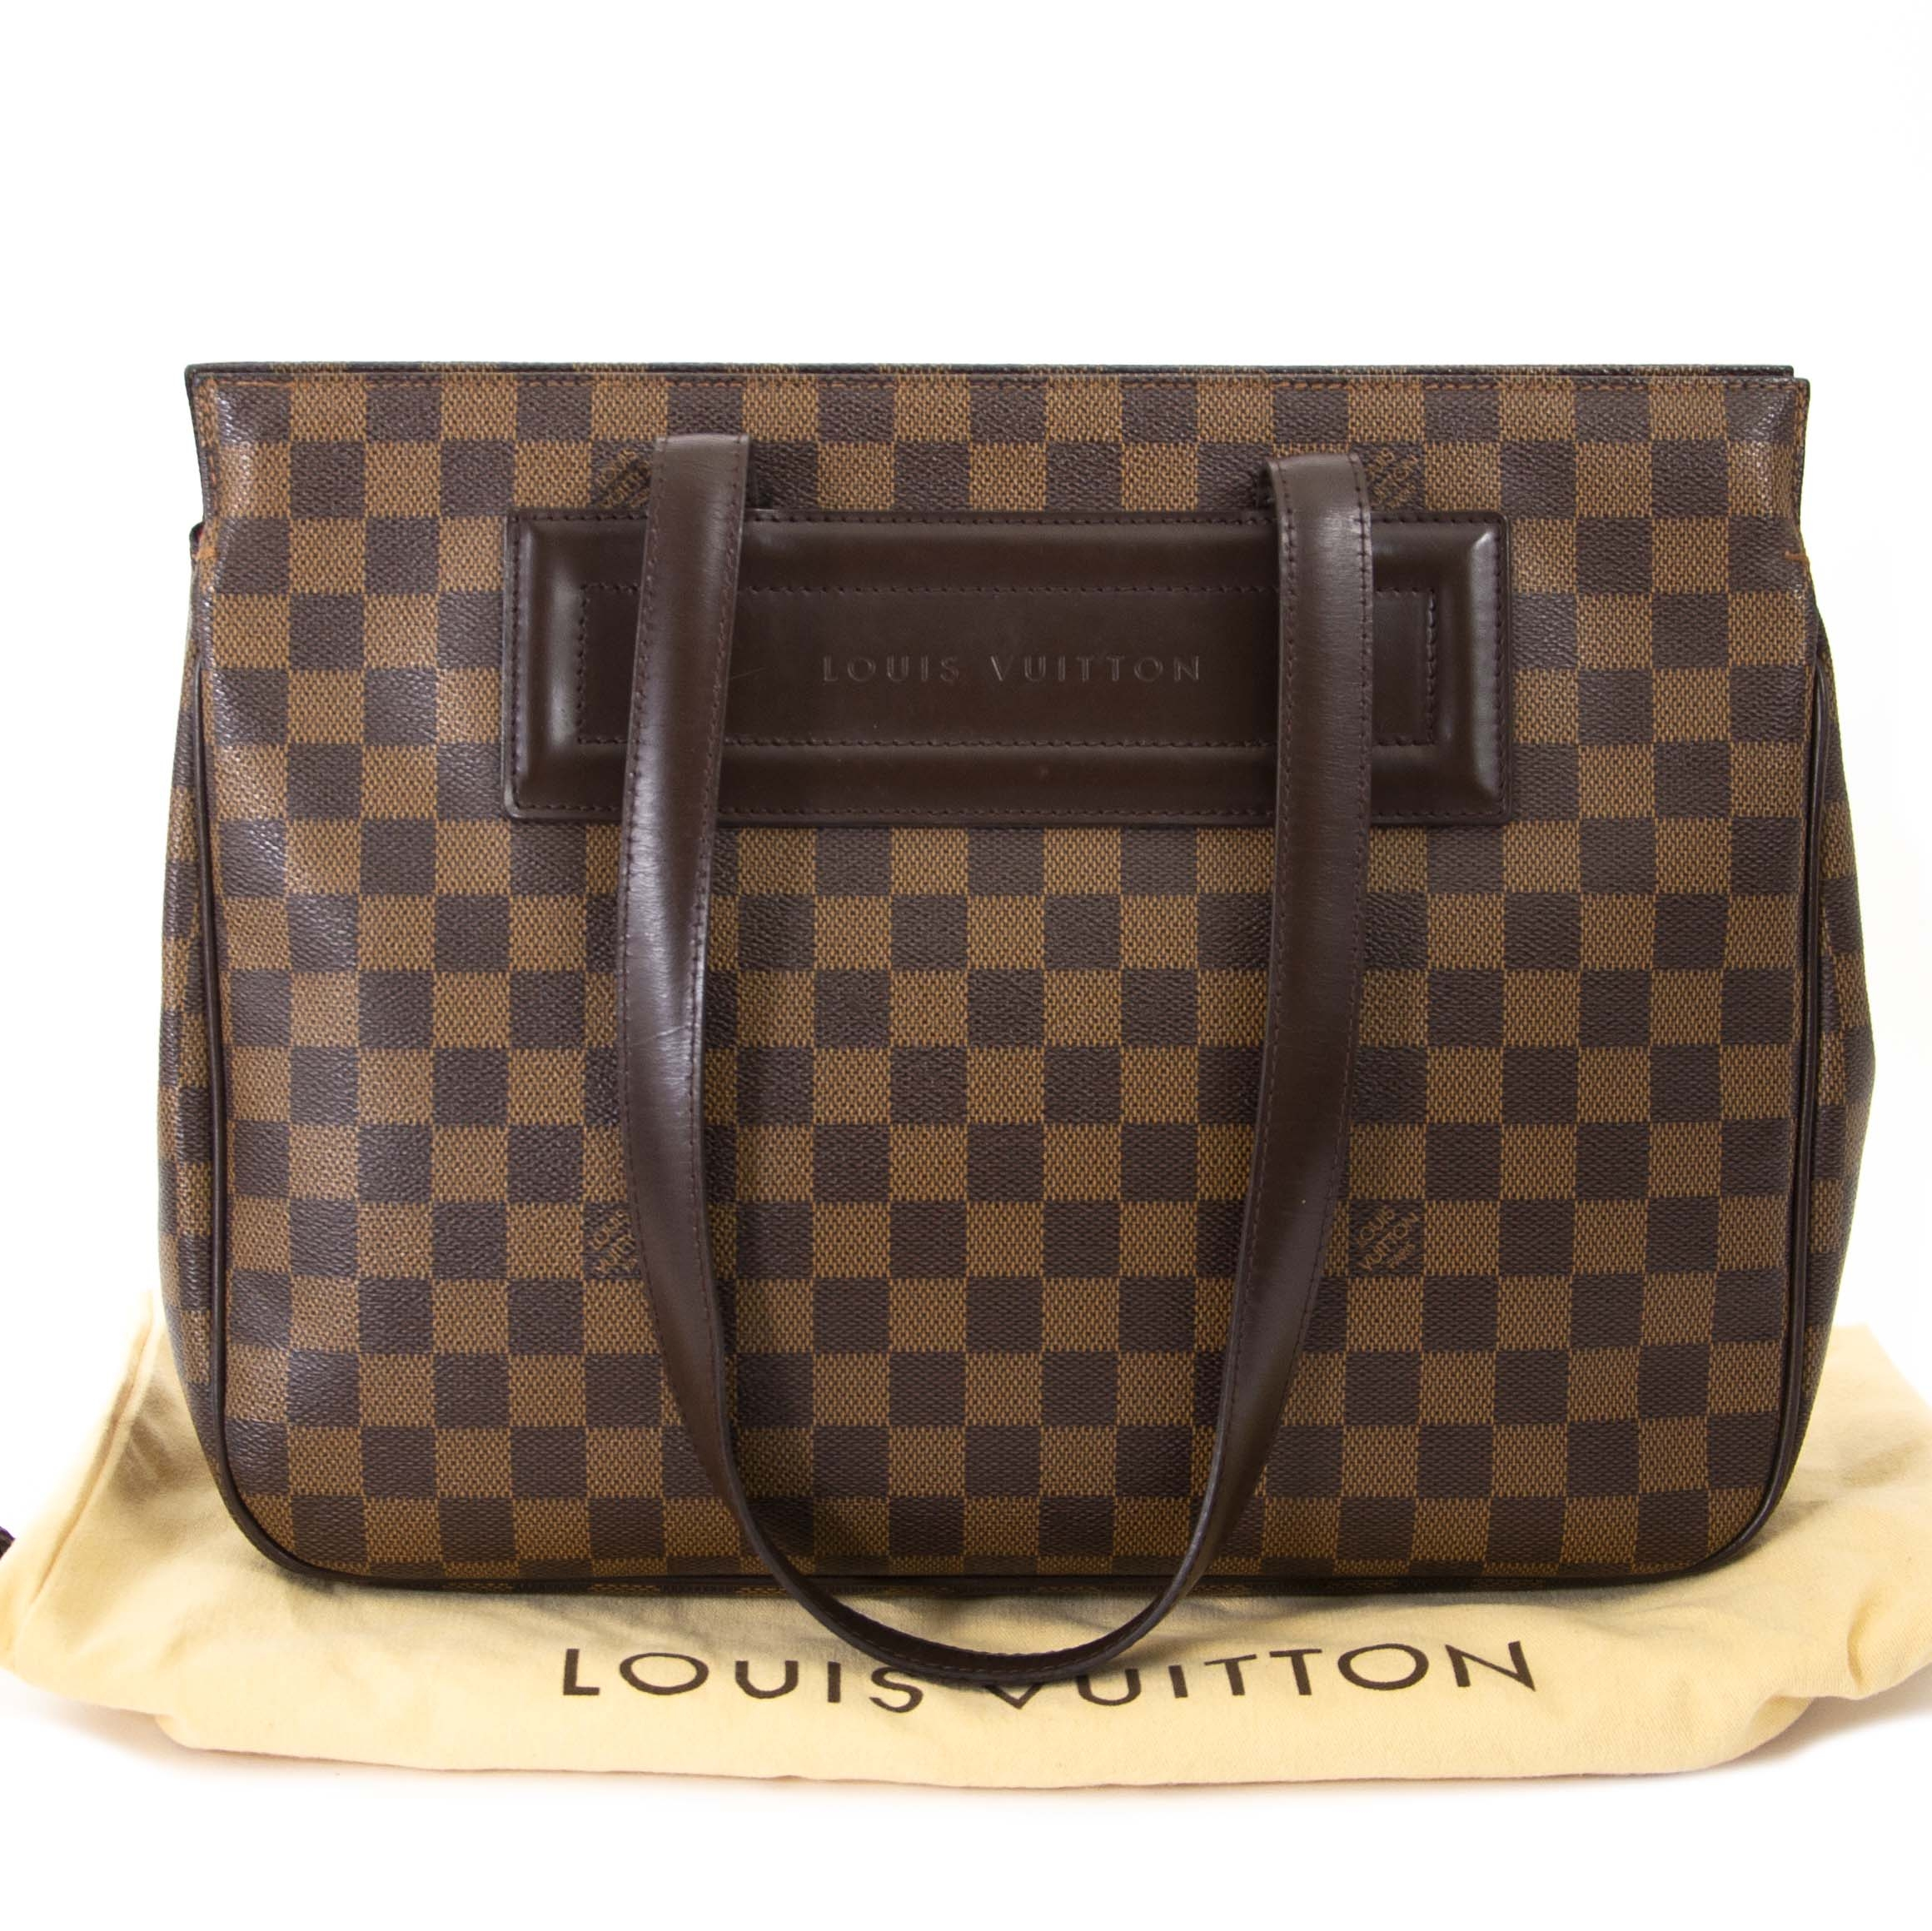 Labellov Buy authentic vintage Louis Vuitton online with Labellov ... 8d2e096196a28